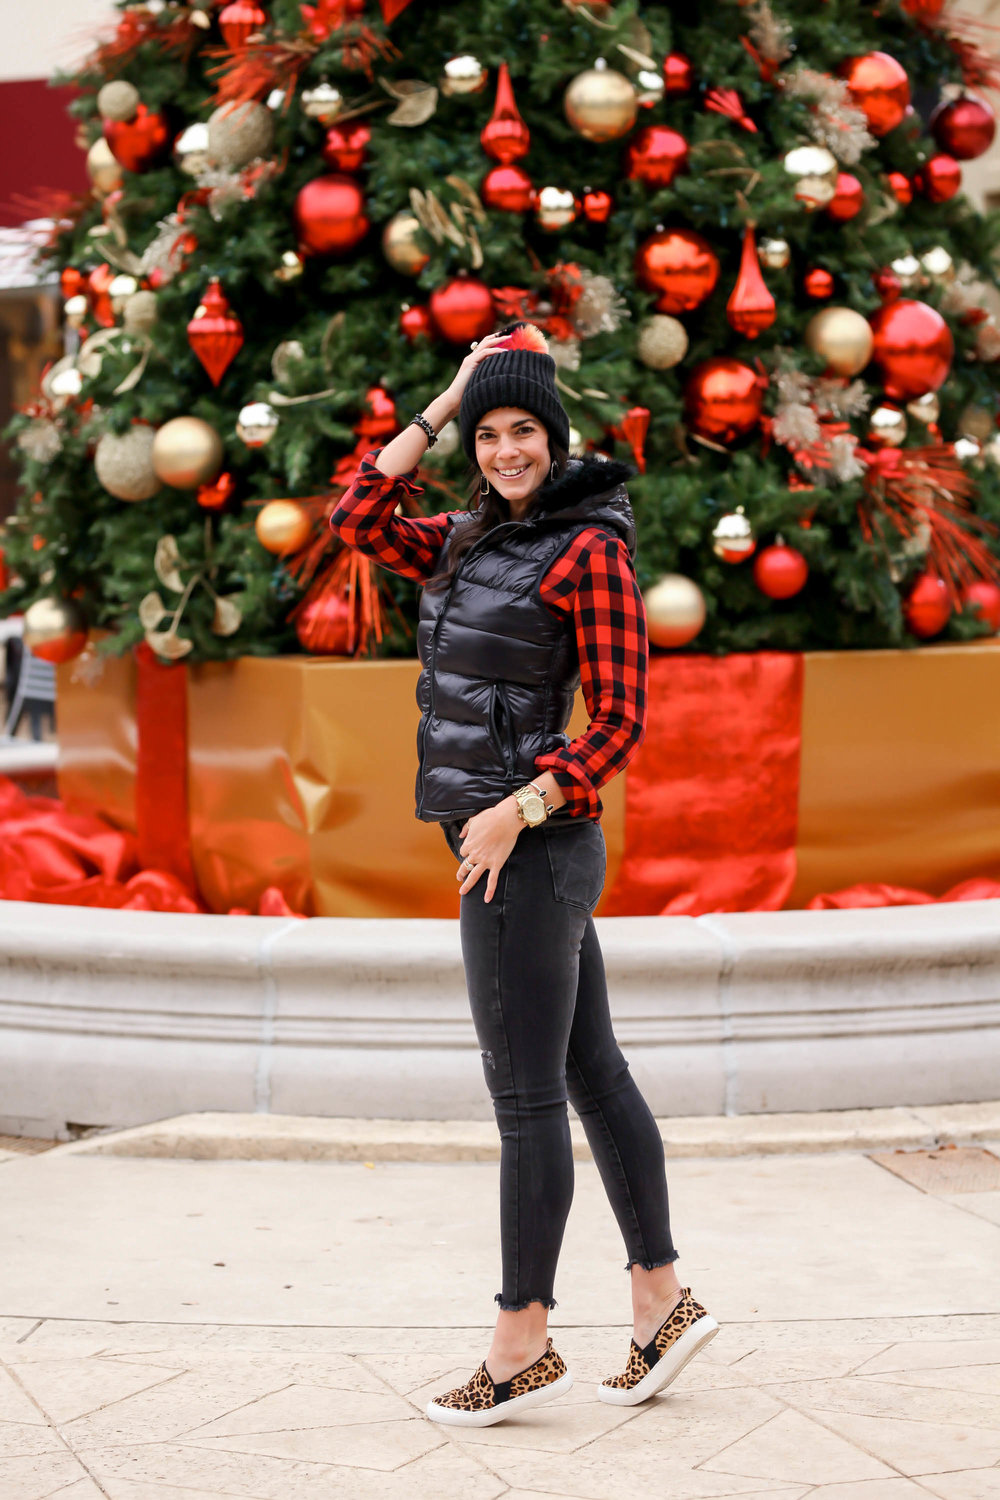 GAP-casual-chic-holiday-outfit-lauren-schwaiger-style-blog.jpg